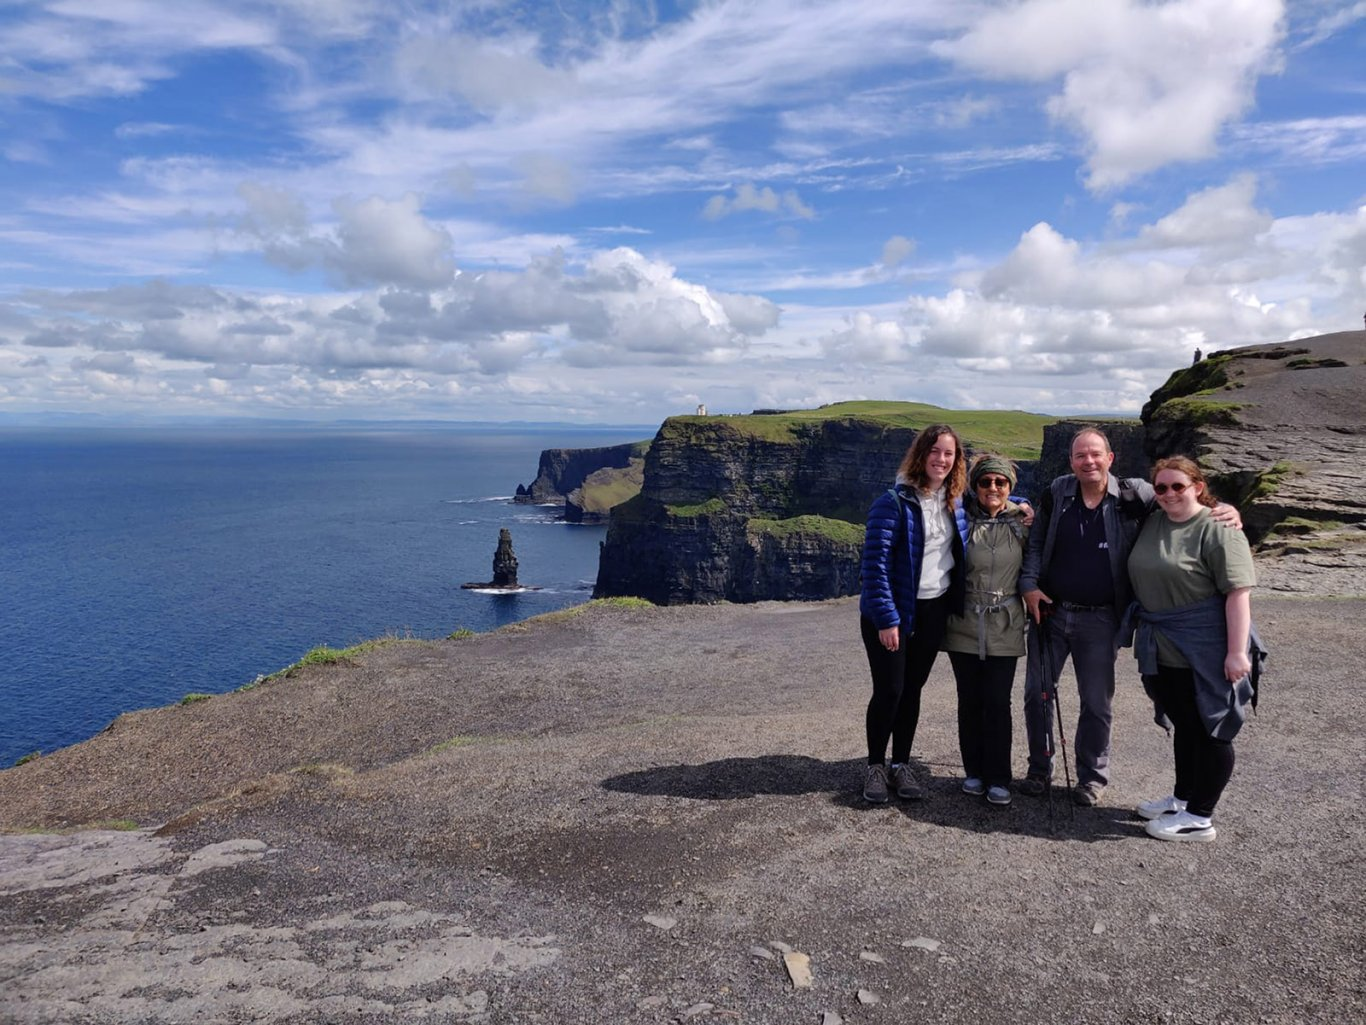 A family at the Cliffs of Moher